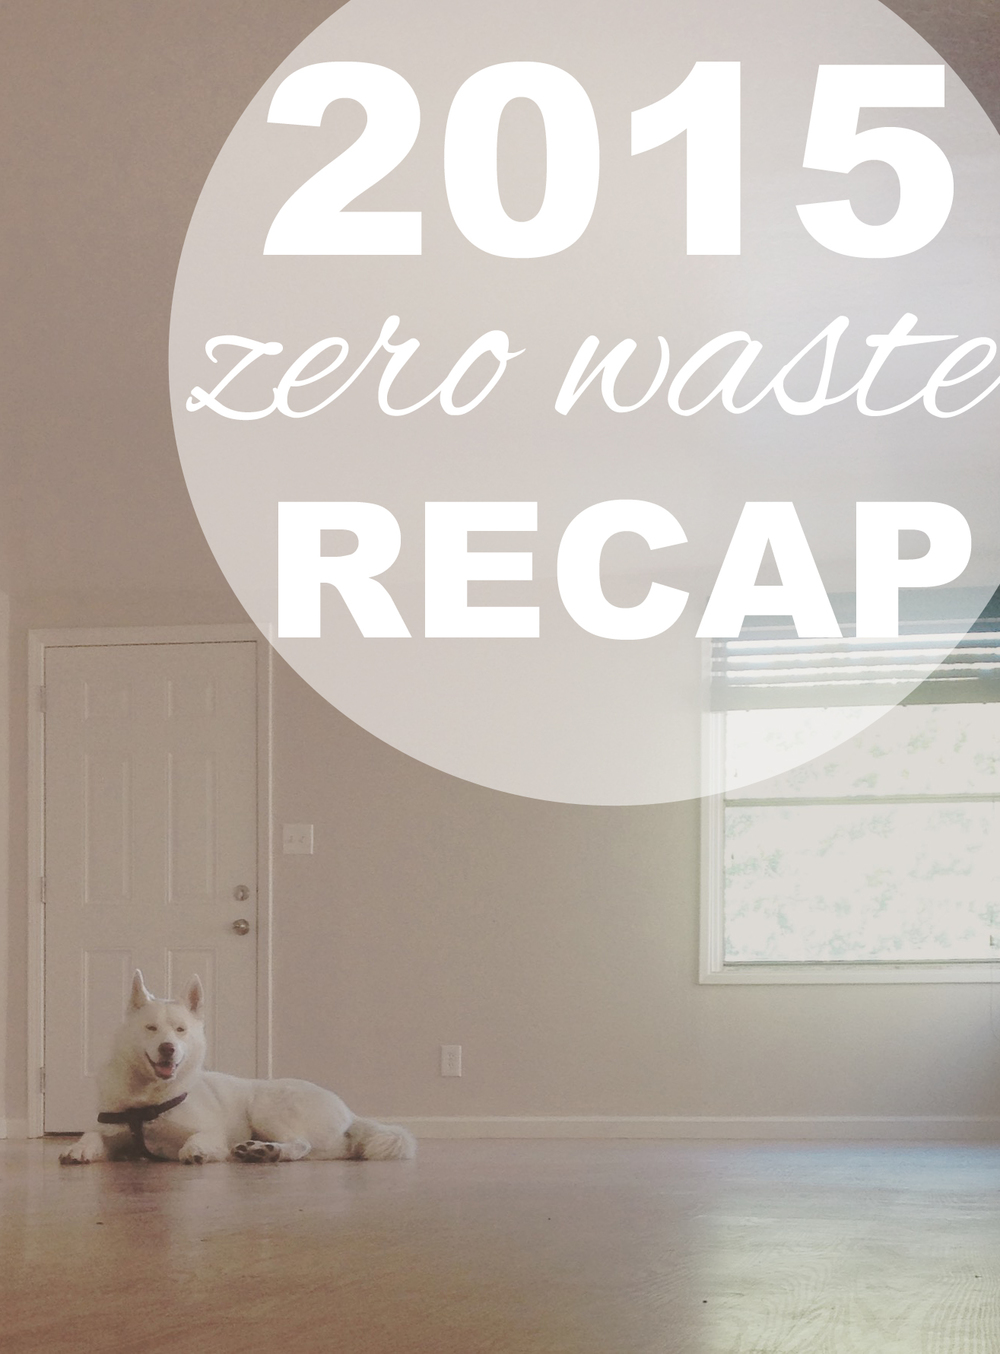 A 2015 Recap with Going Zero Waste!